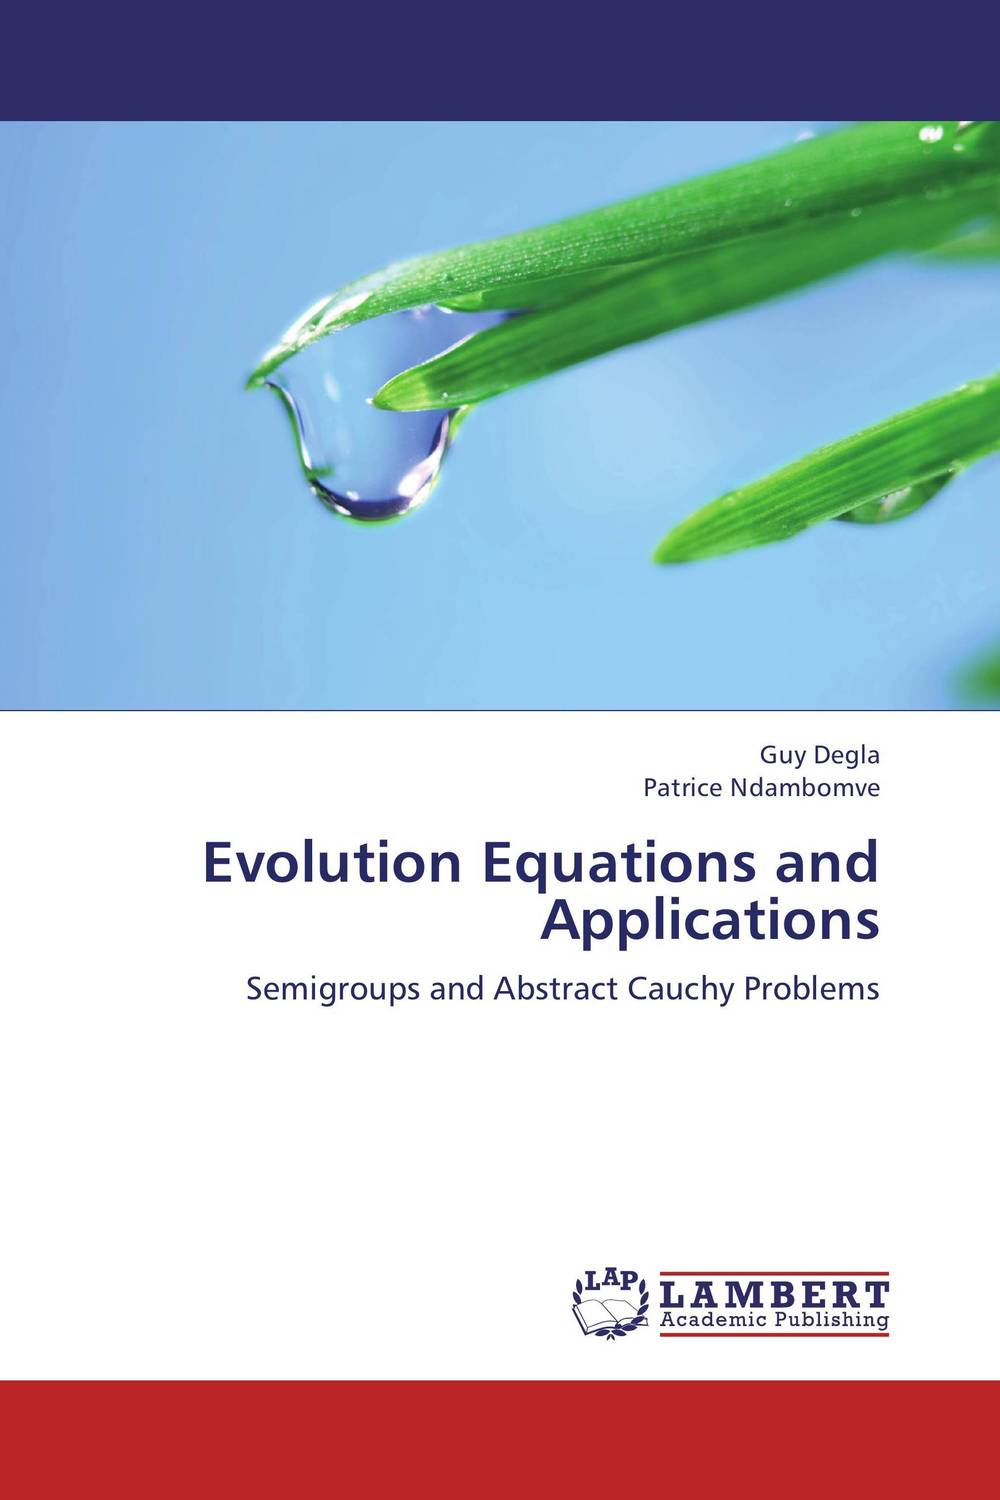 Evolution Equations and Applications collocation methods for volterra integral and related functional differential equations